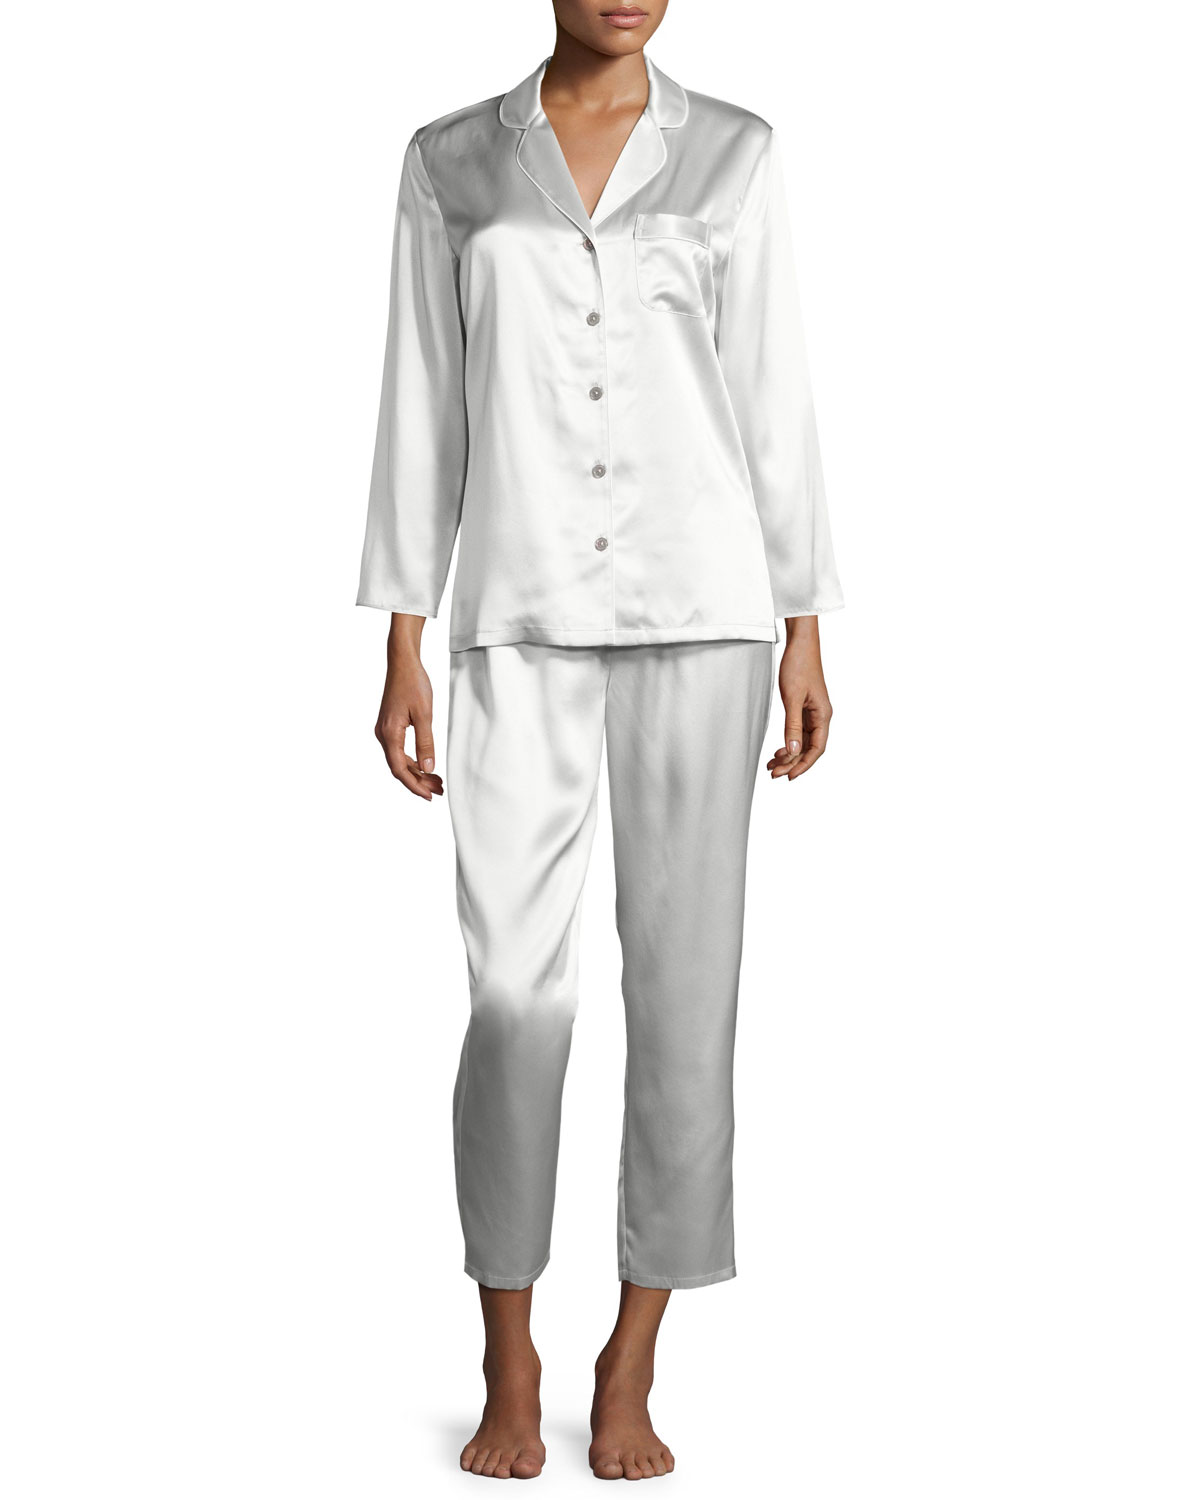 Neiman Marcus Satin Silk Two-Piece Pajama Set  9d31f3465